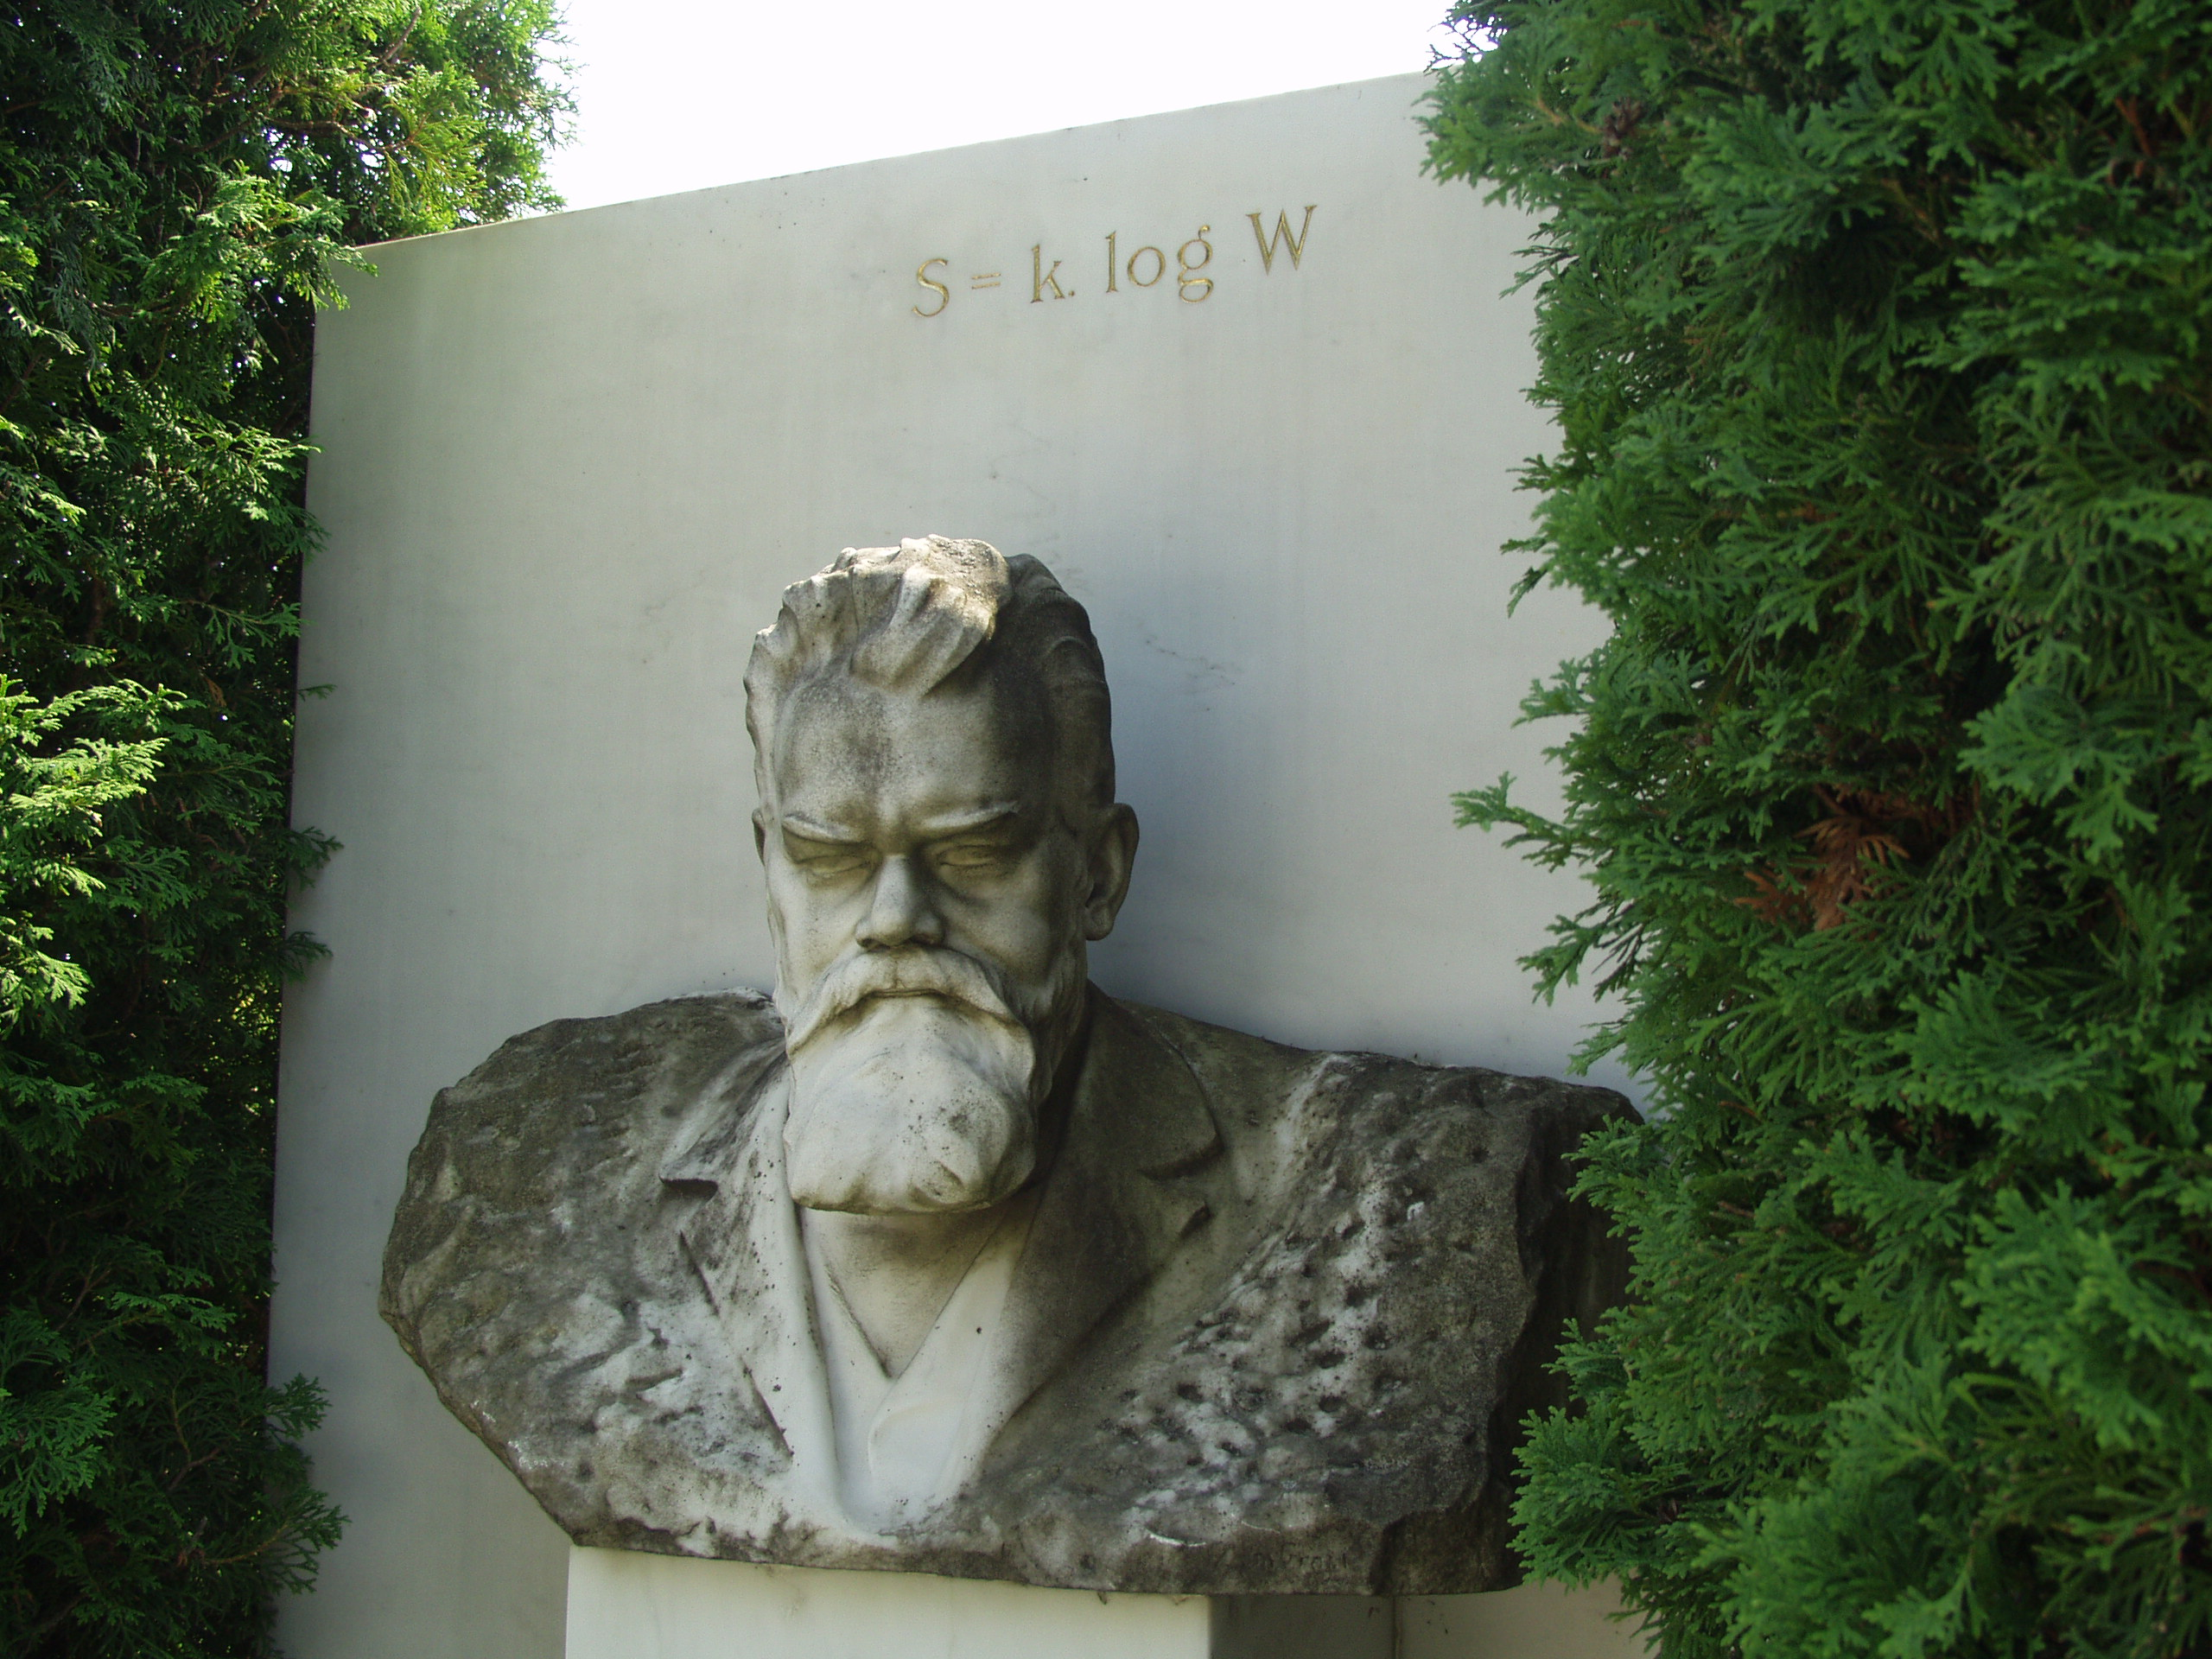 Vienna, Austria. Boltzmann's Tomb in the Zentralfriedhof (Central Cemetary). The Tomb is in Gruppe 14 C Grab No 1 (group 14 grave number 1). Photos by Tom Schneider or of him by Gerd Muller. 2002 July 14. This image: bust of Boltzmann.